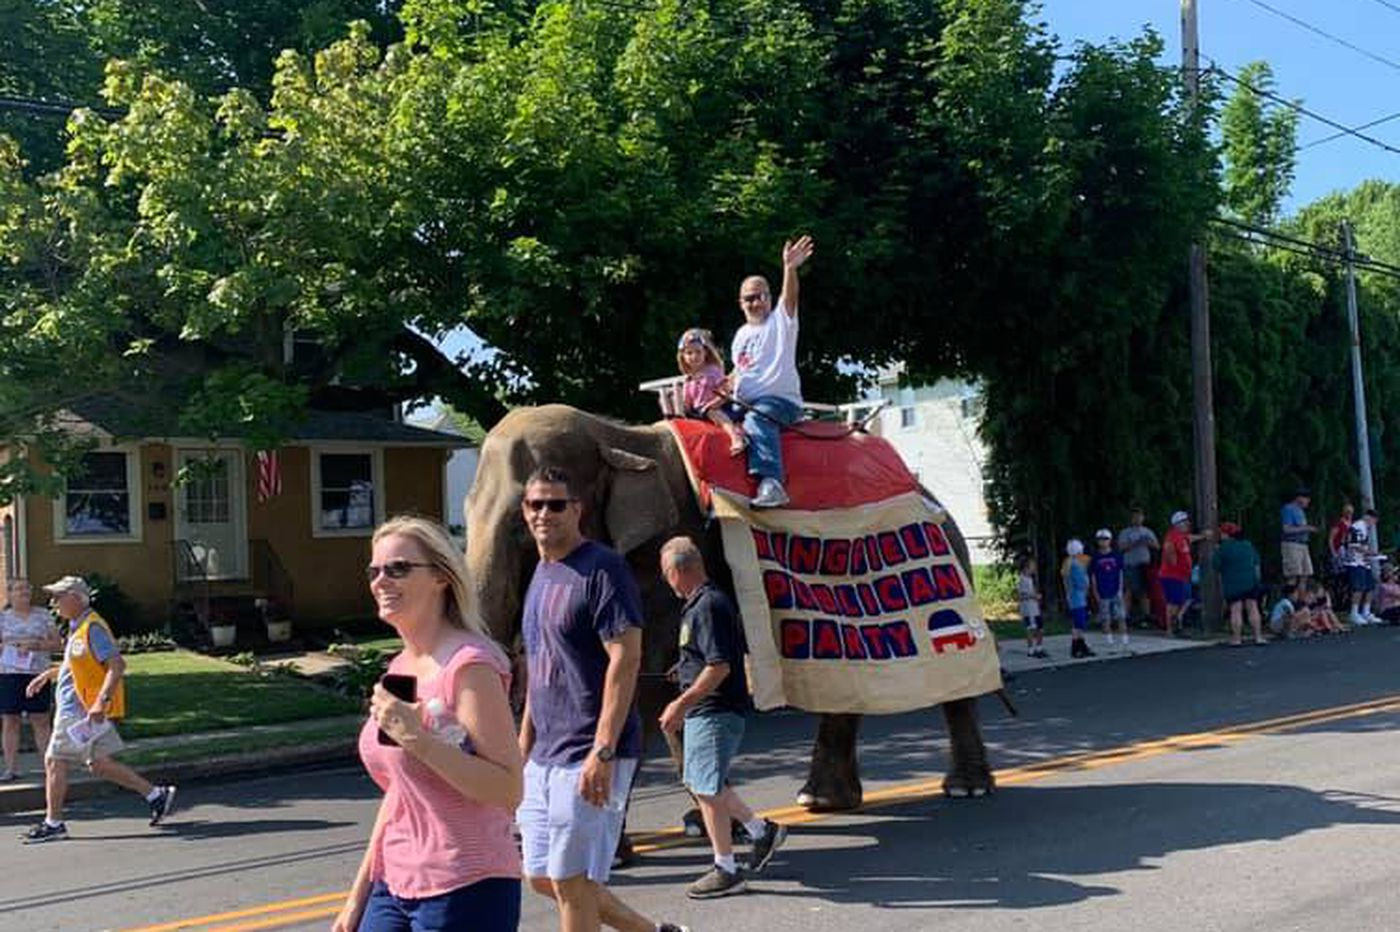 For more than 30 years, an elephant walked in a Delco parade. Then animal rights activists took notice.